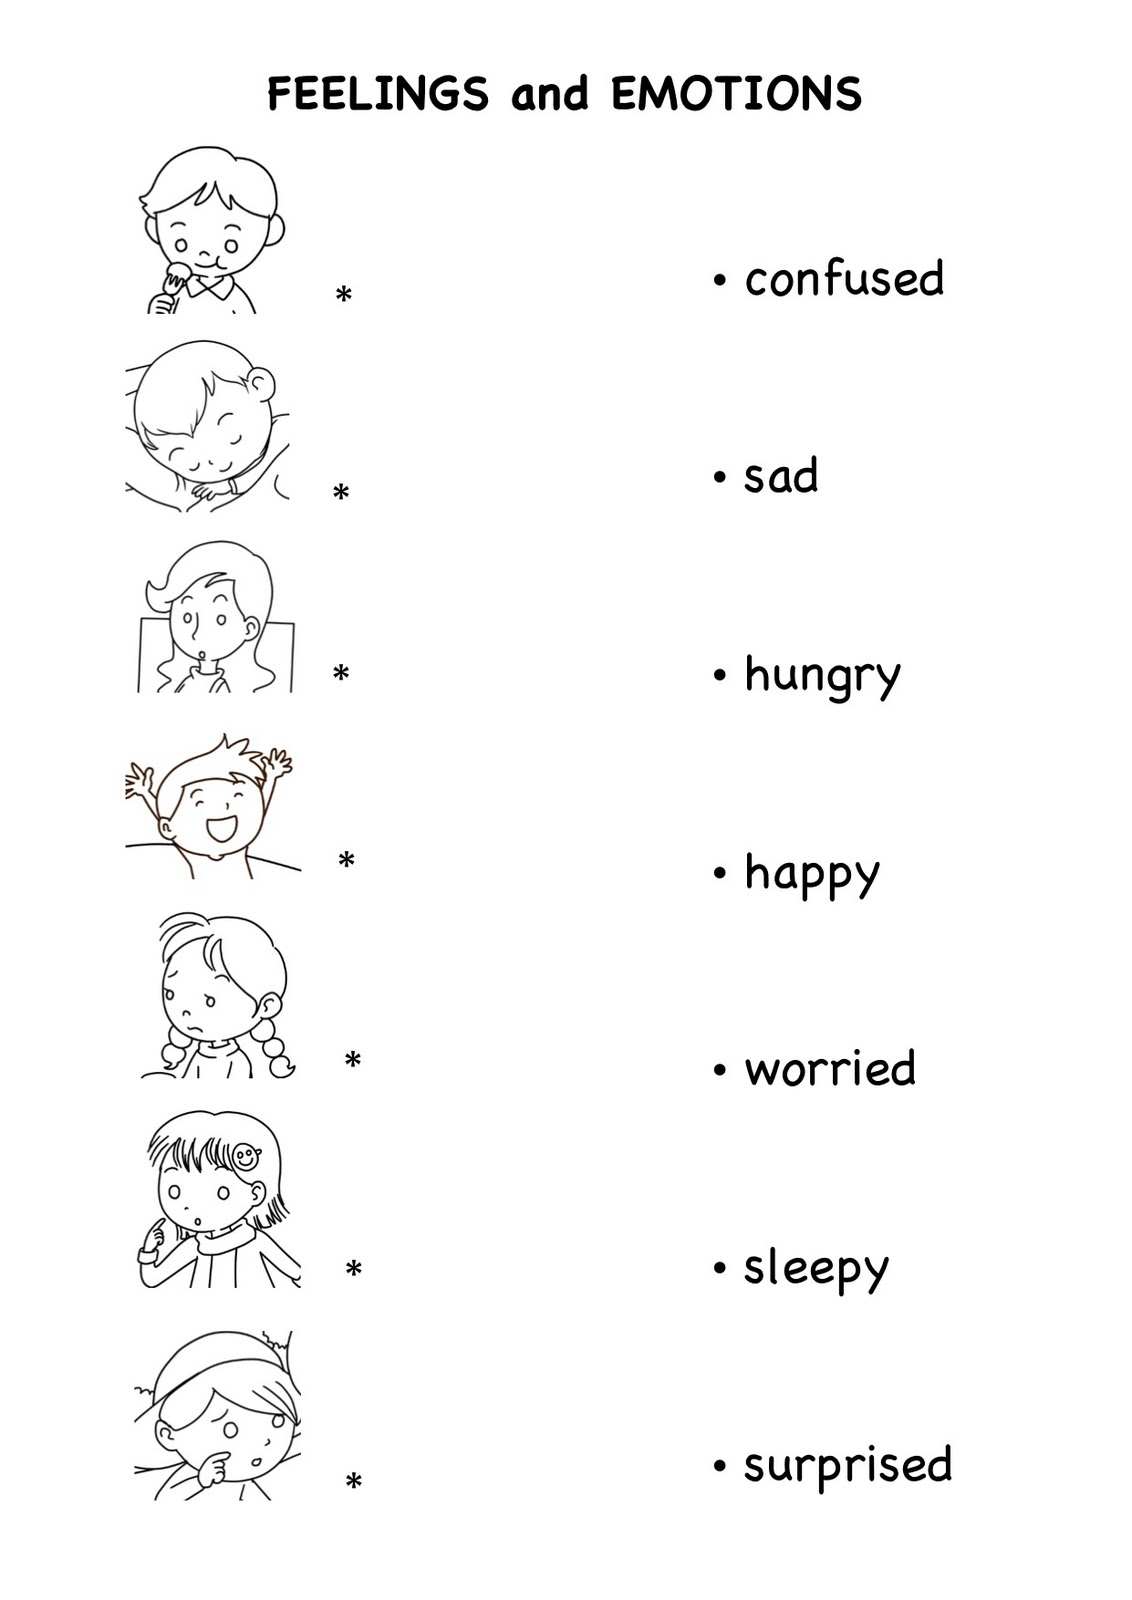 Worksheet Feelings And Emotions Worksheets Pdf emotion worksheet free worksheets library download and print worksheet